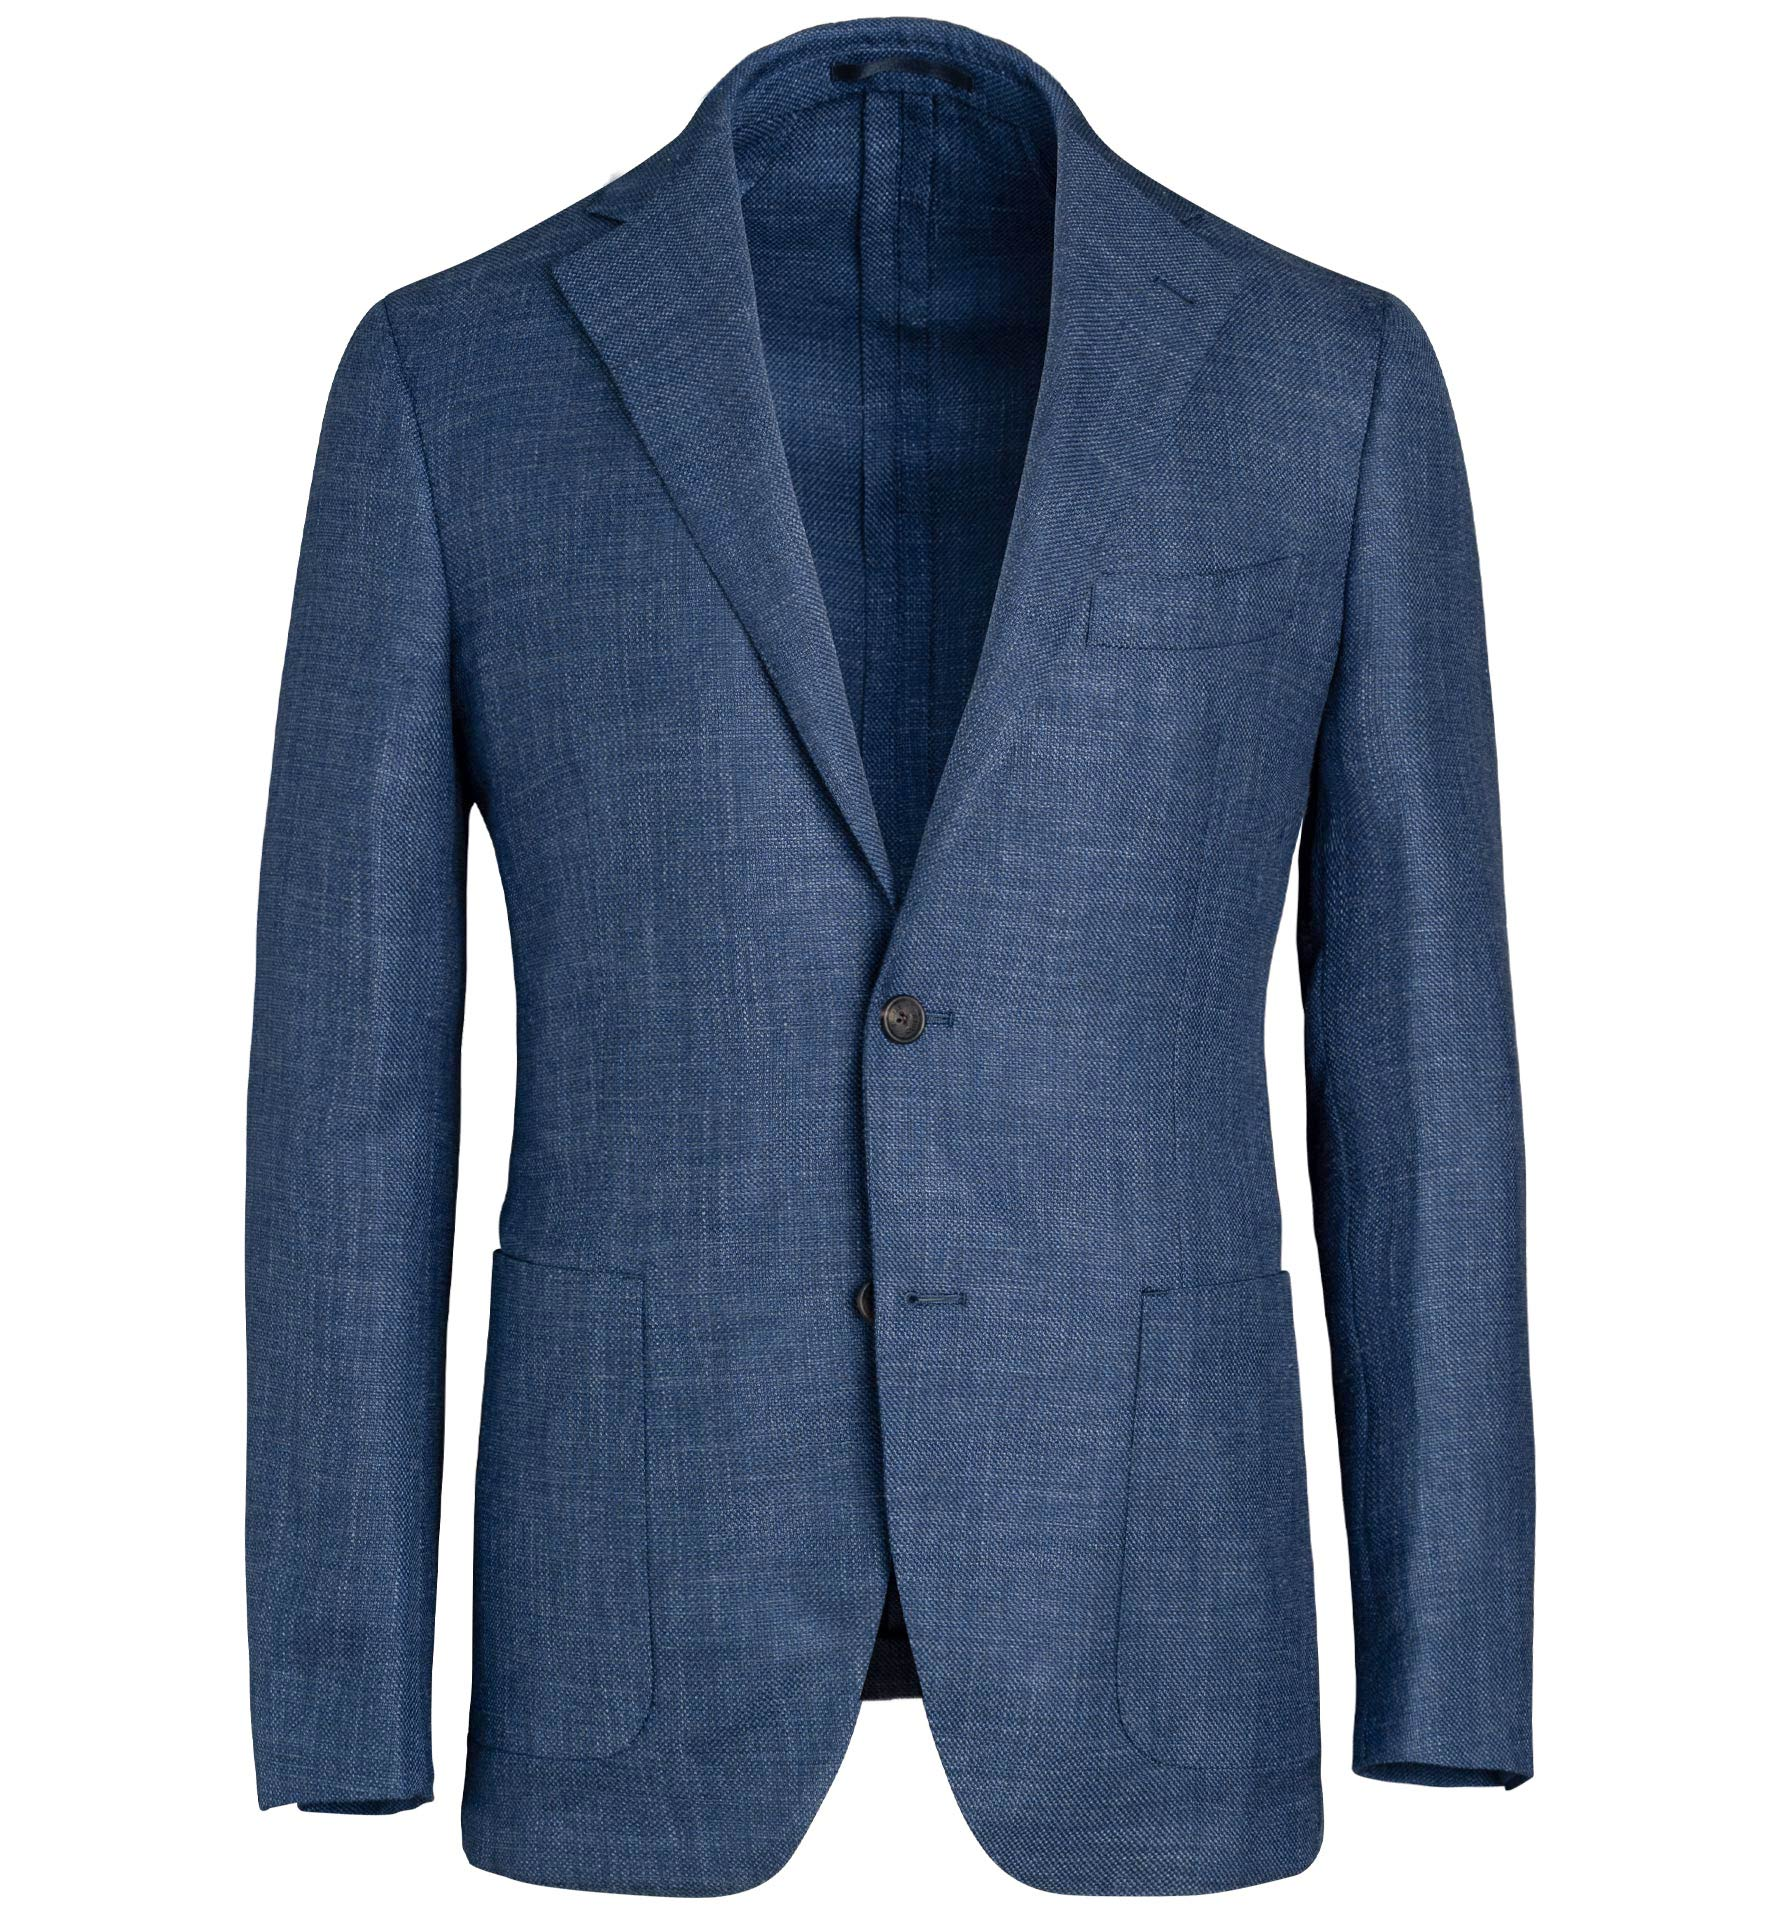 Zoom Image of Bedford Blue Wool Silk and Linen Hopsack Jacket